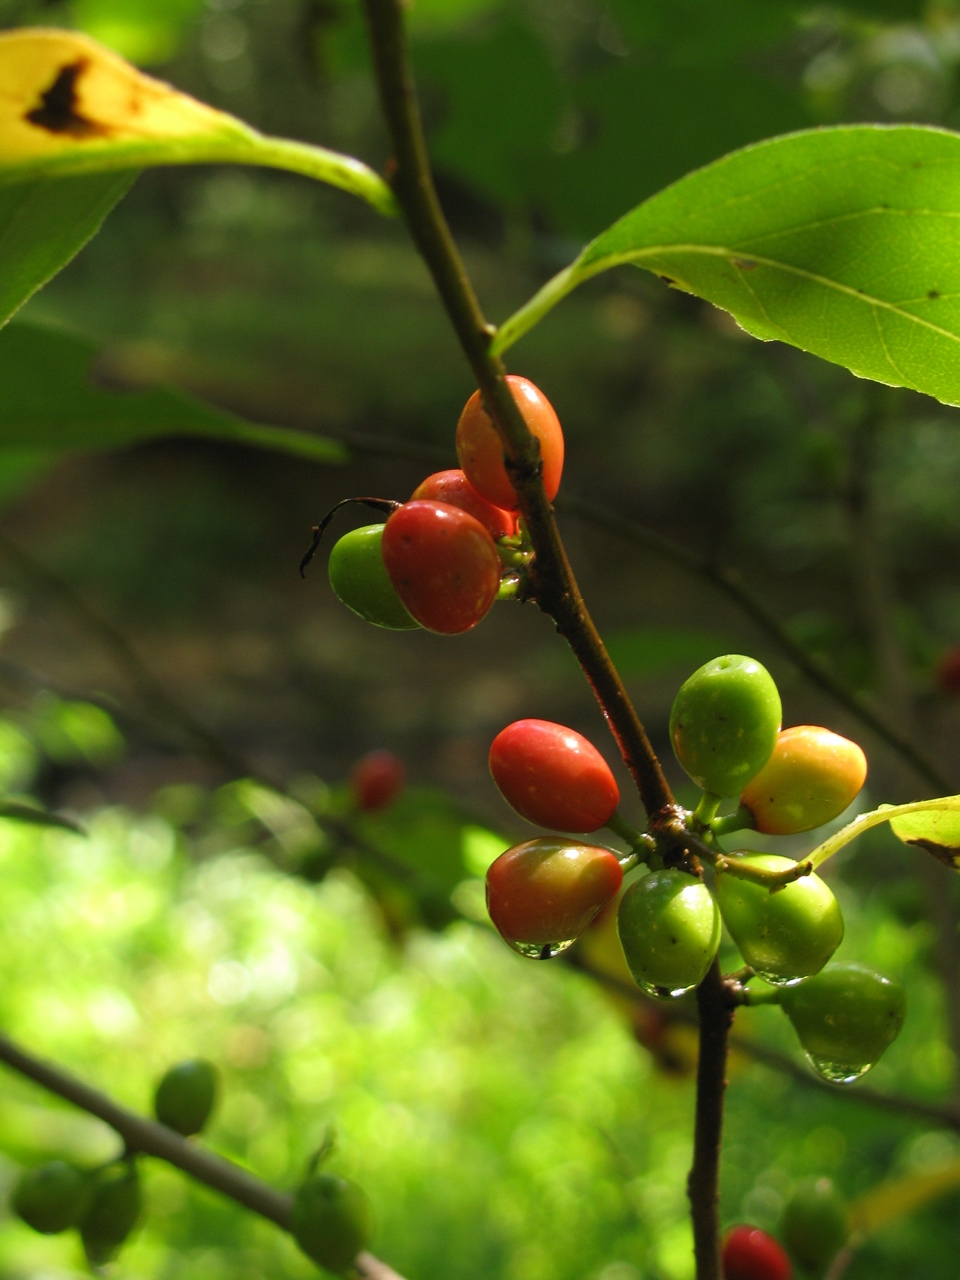 The Scientific Name is Lindera benzoin. You will likely hear them called Northern Spicebush. This picture shows the Fruit of Lindera benzoin in August of Lindera benzoin